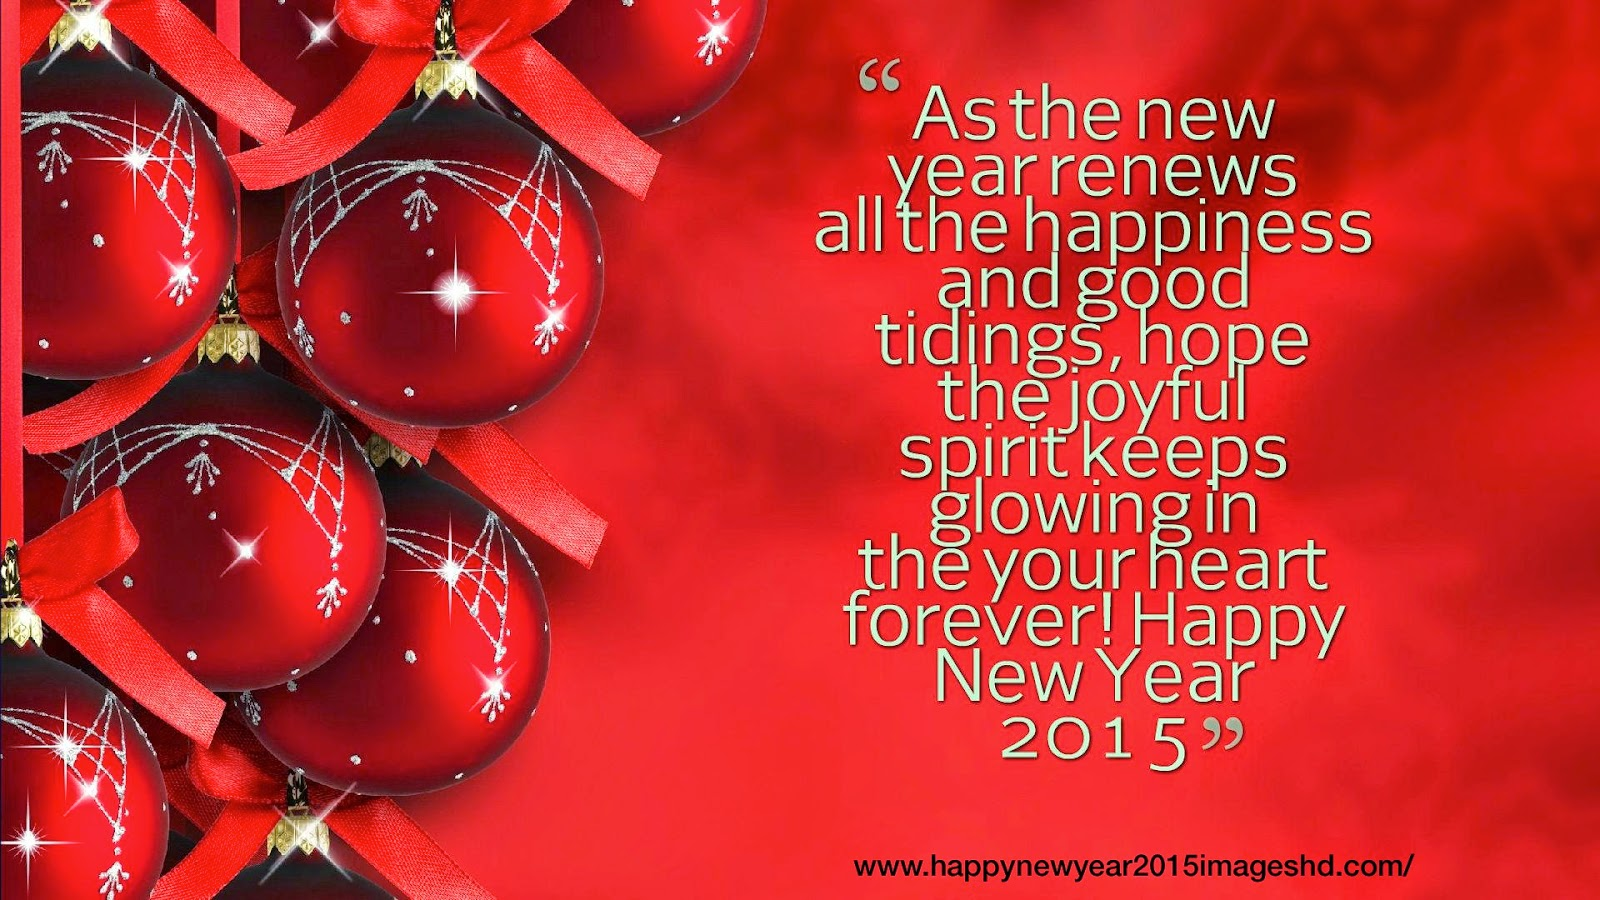 Happy Chinese New Year 2015 Quotes Wallpaper 13066 1600x900